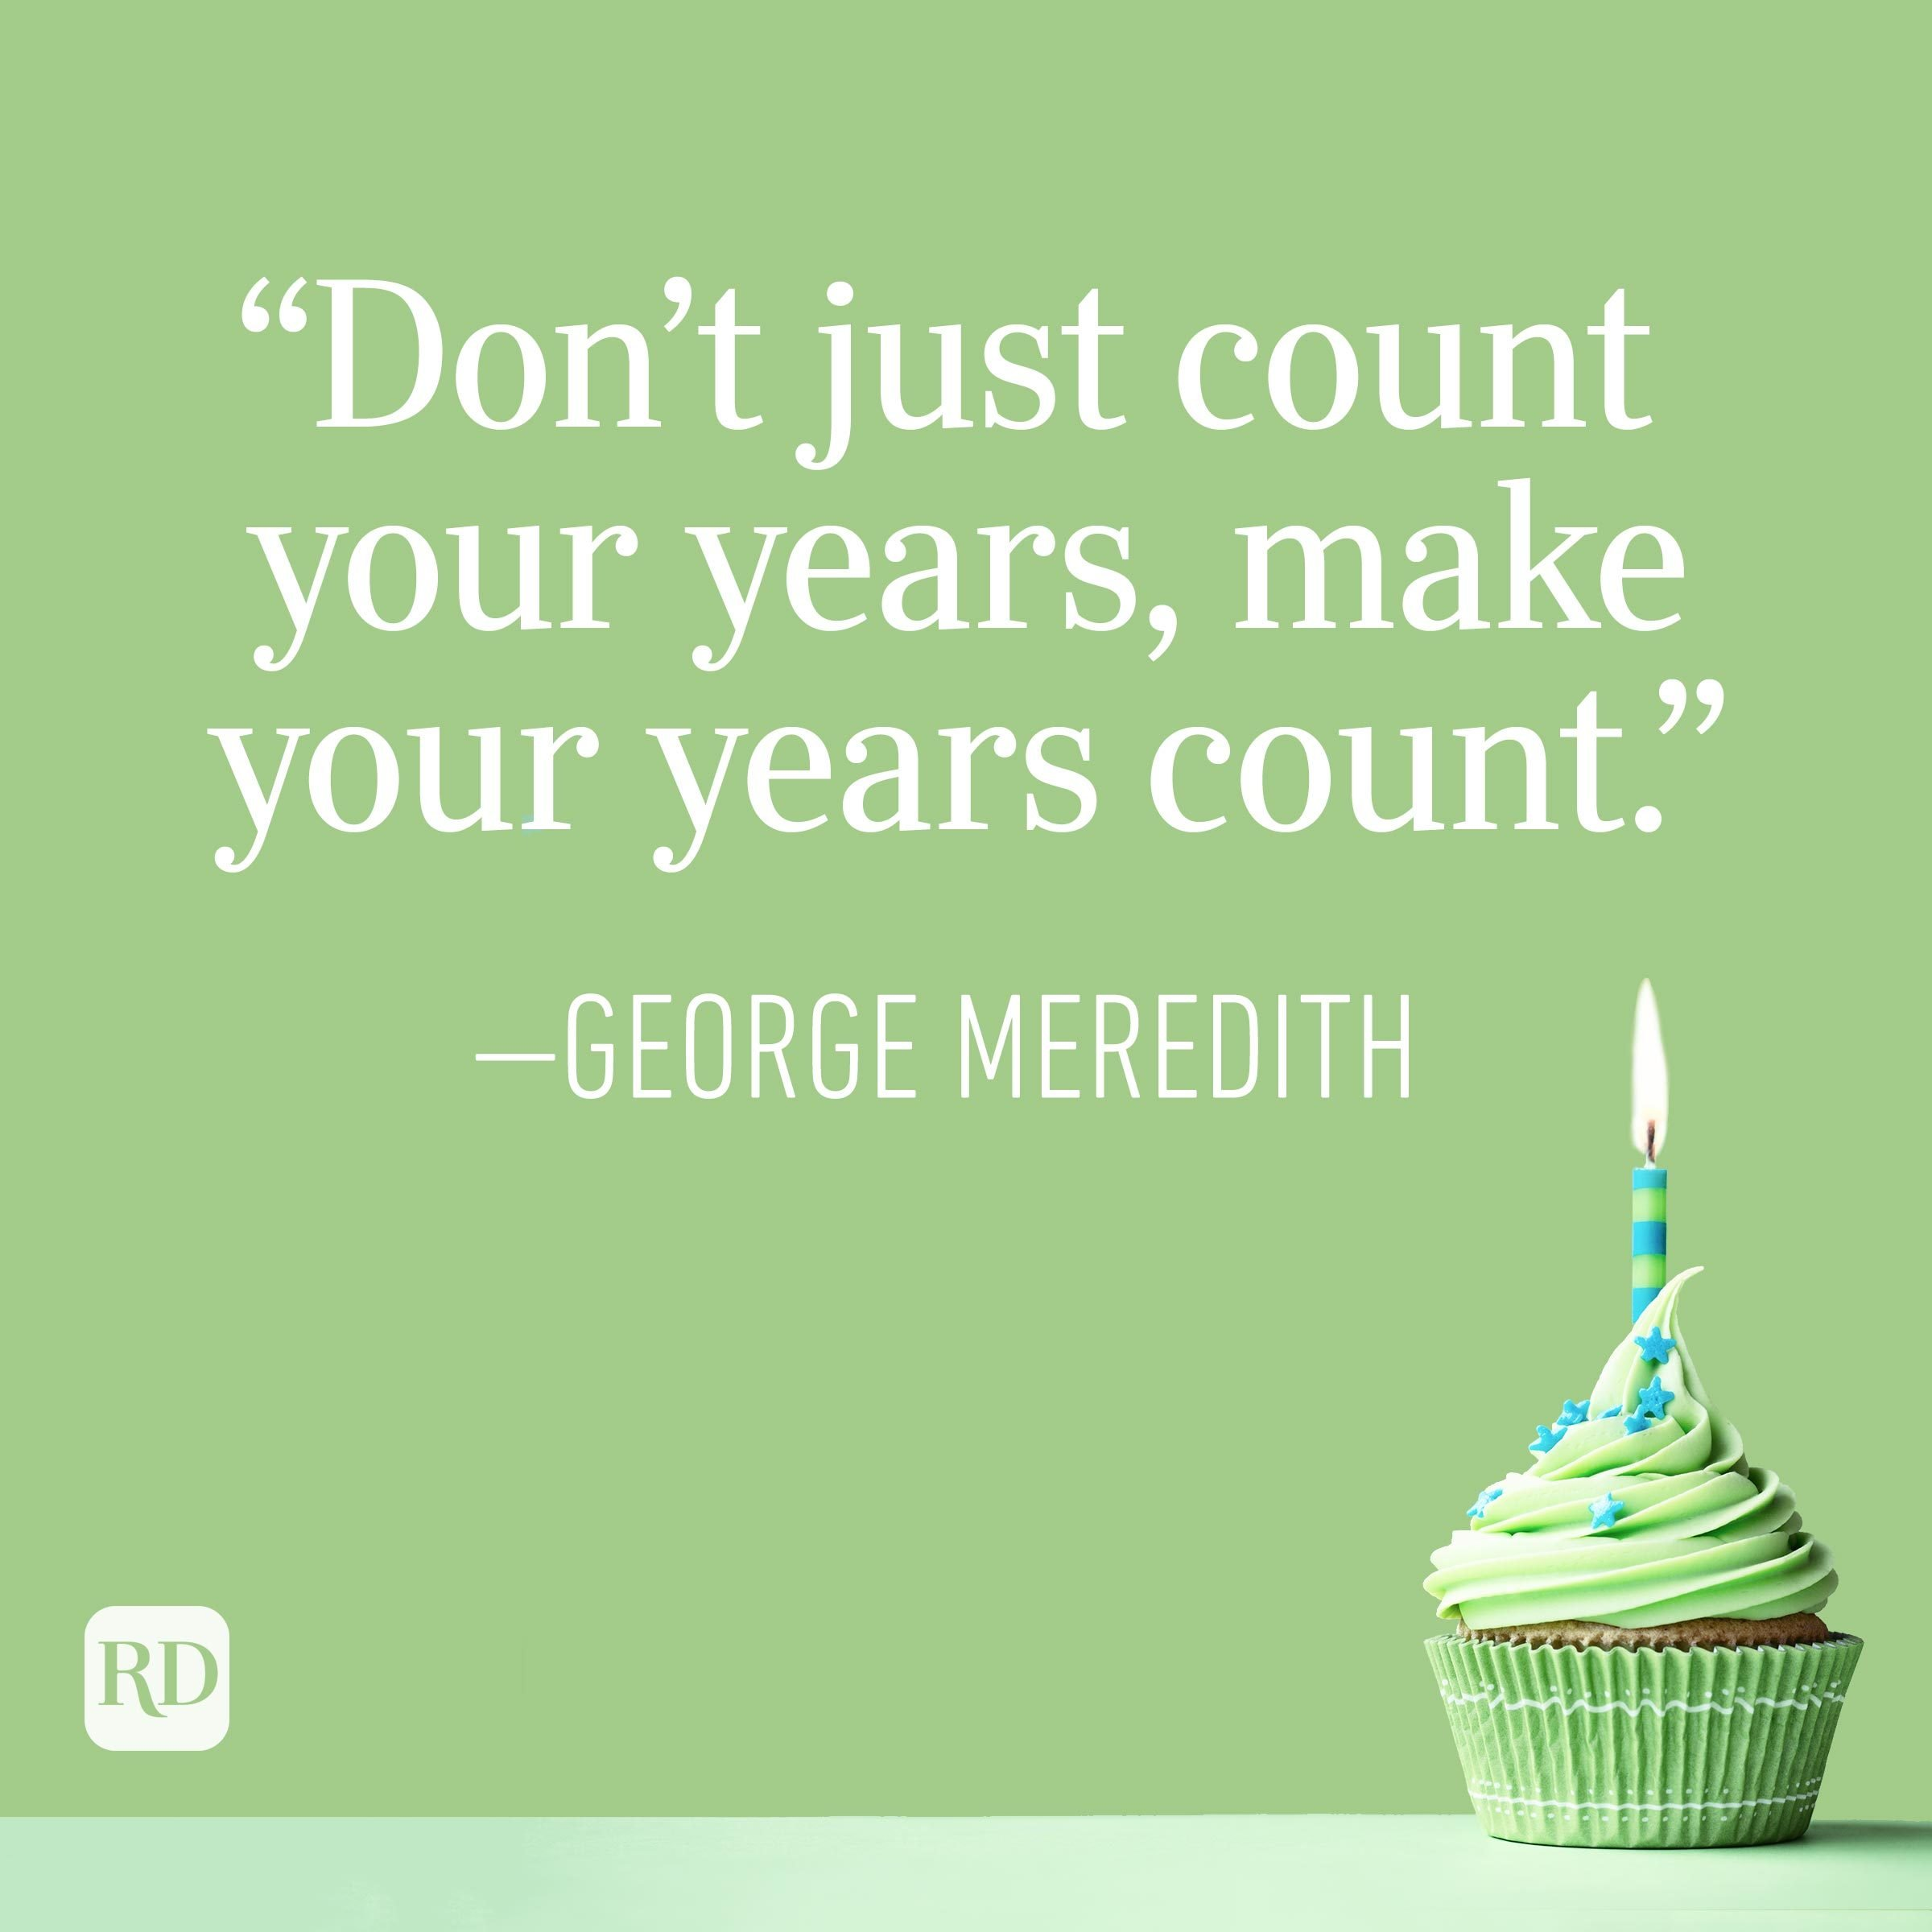 """""""Don't just count your years, make your years count."""" —George Meredith"""